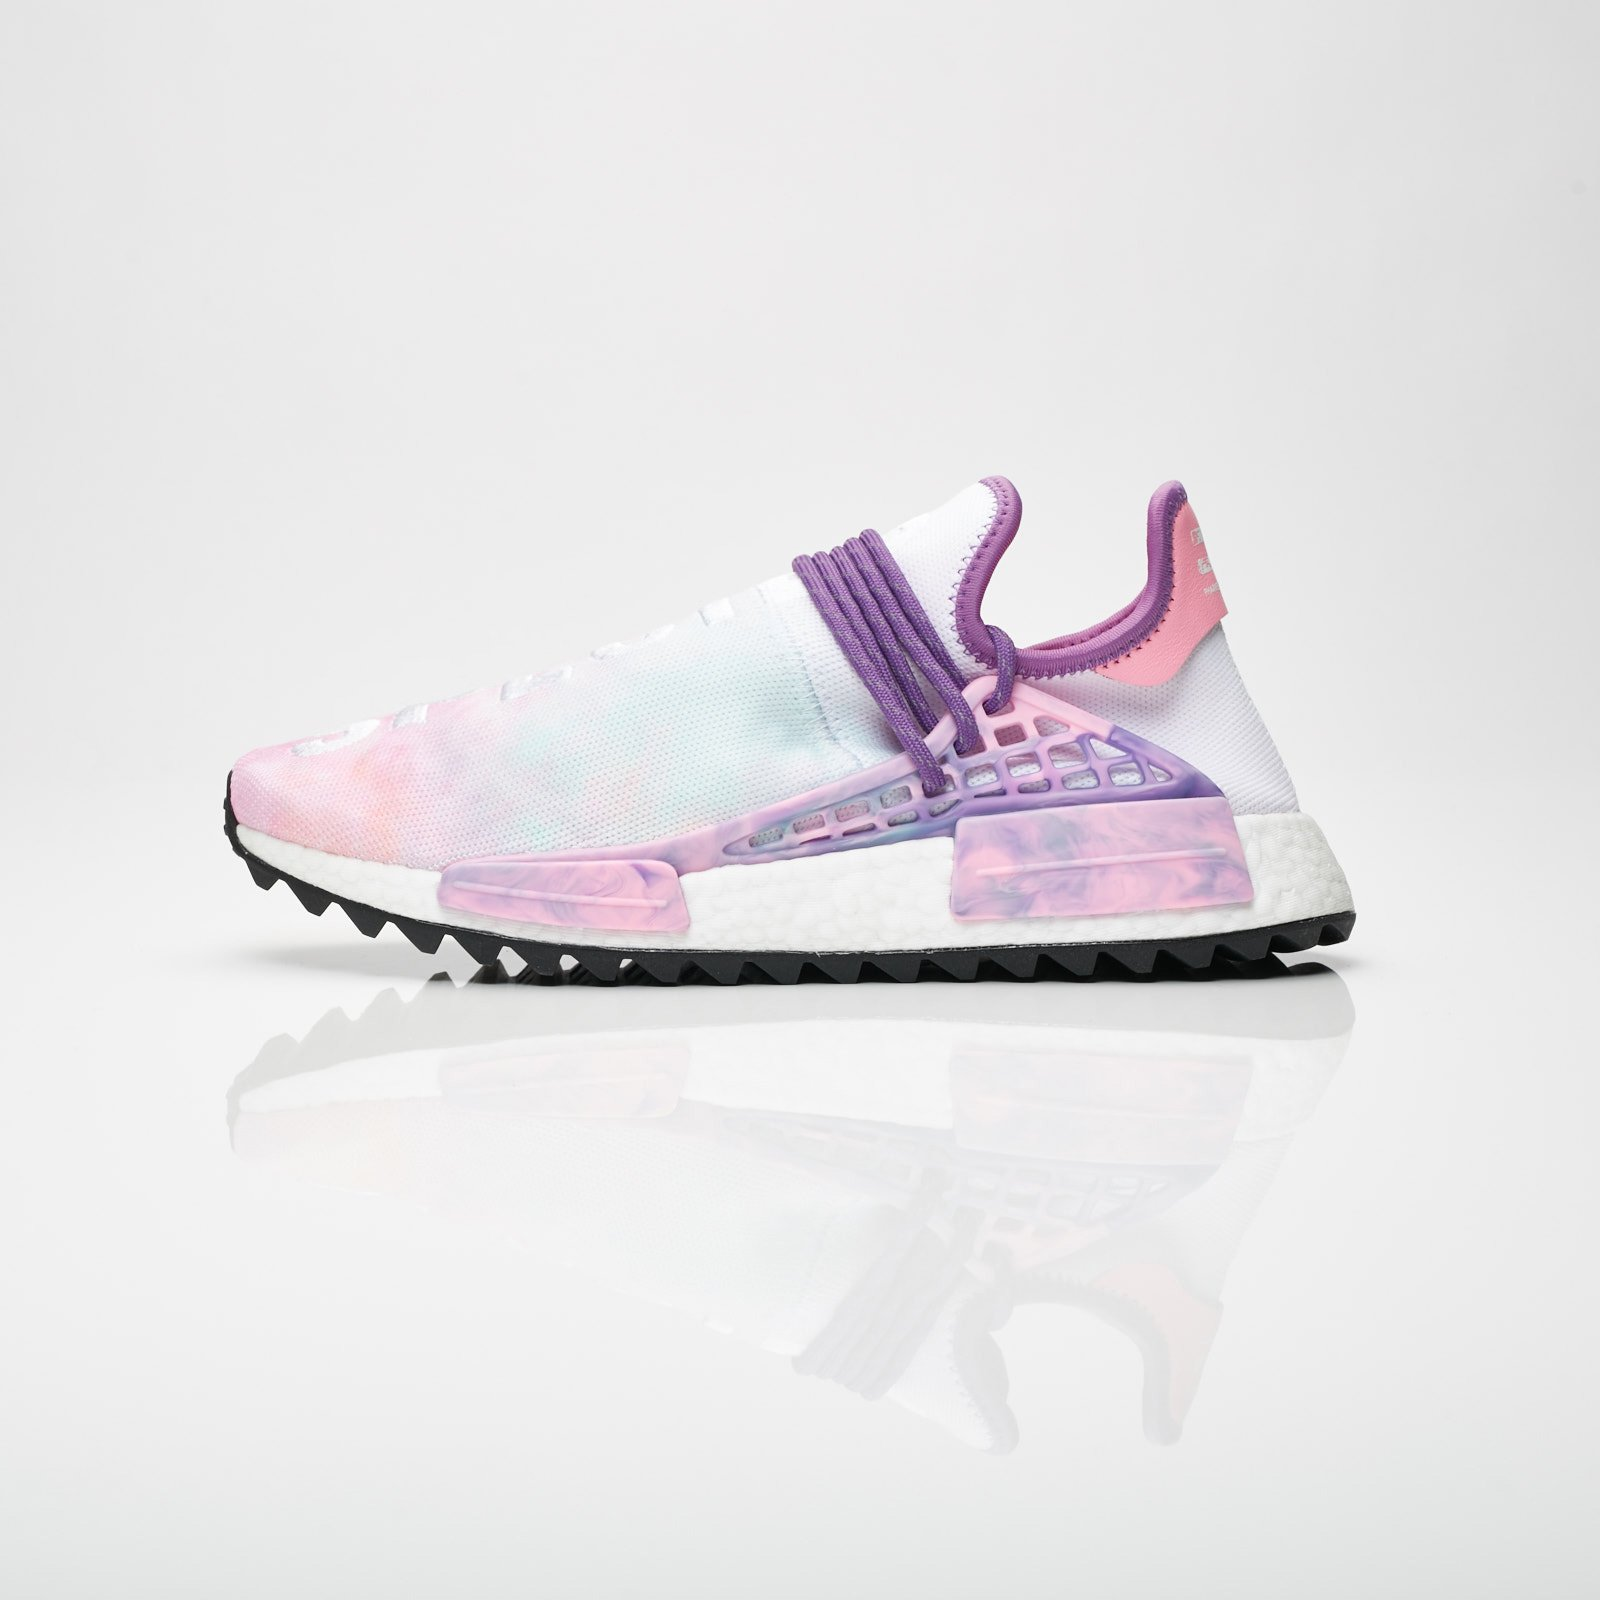 29e64bc0464e6 adidas Pharrell Williams HU Holi NMD MC - Ac7362 - Sneakersnstuff ...